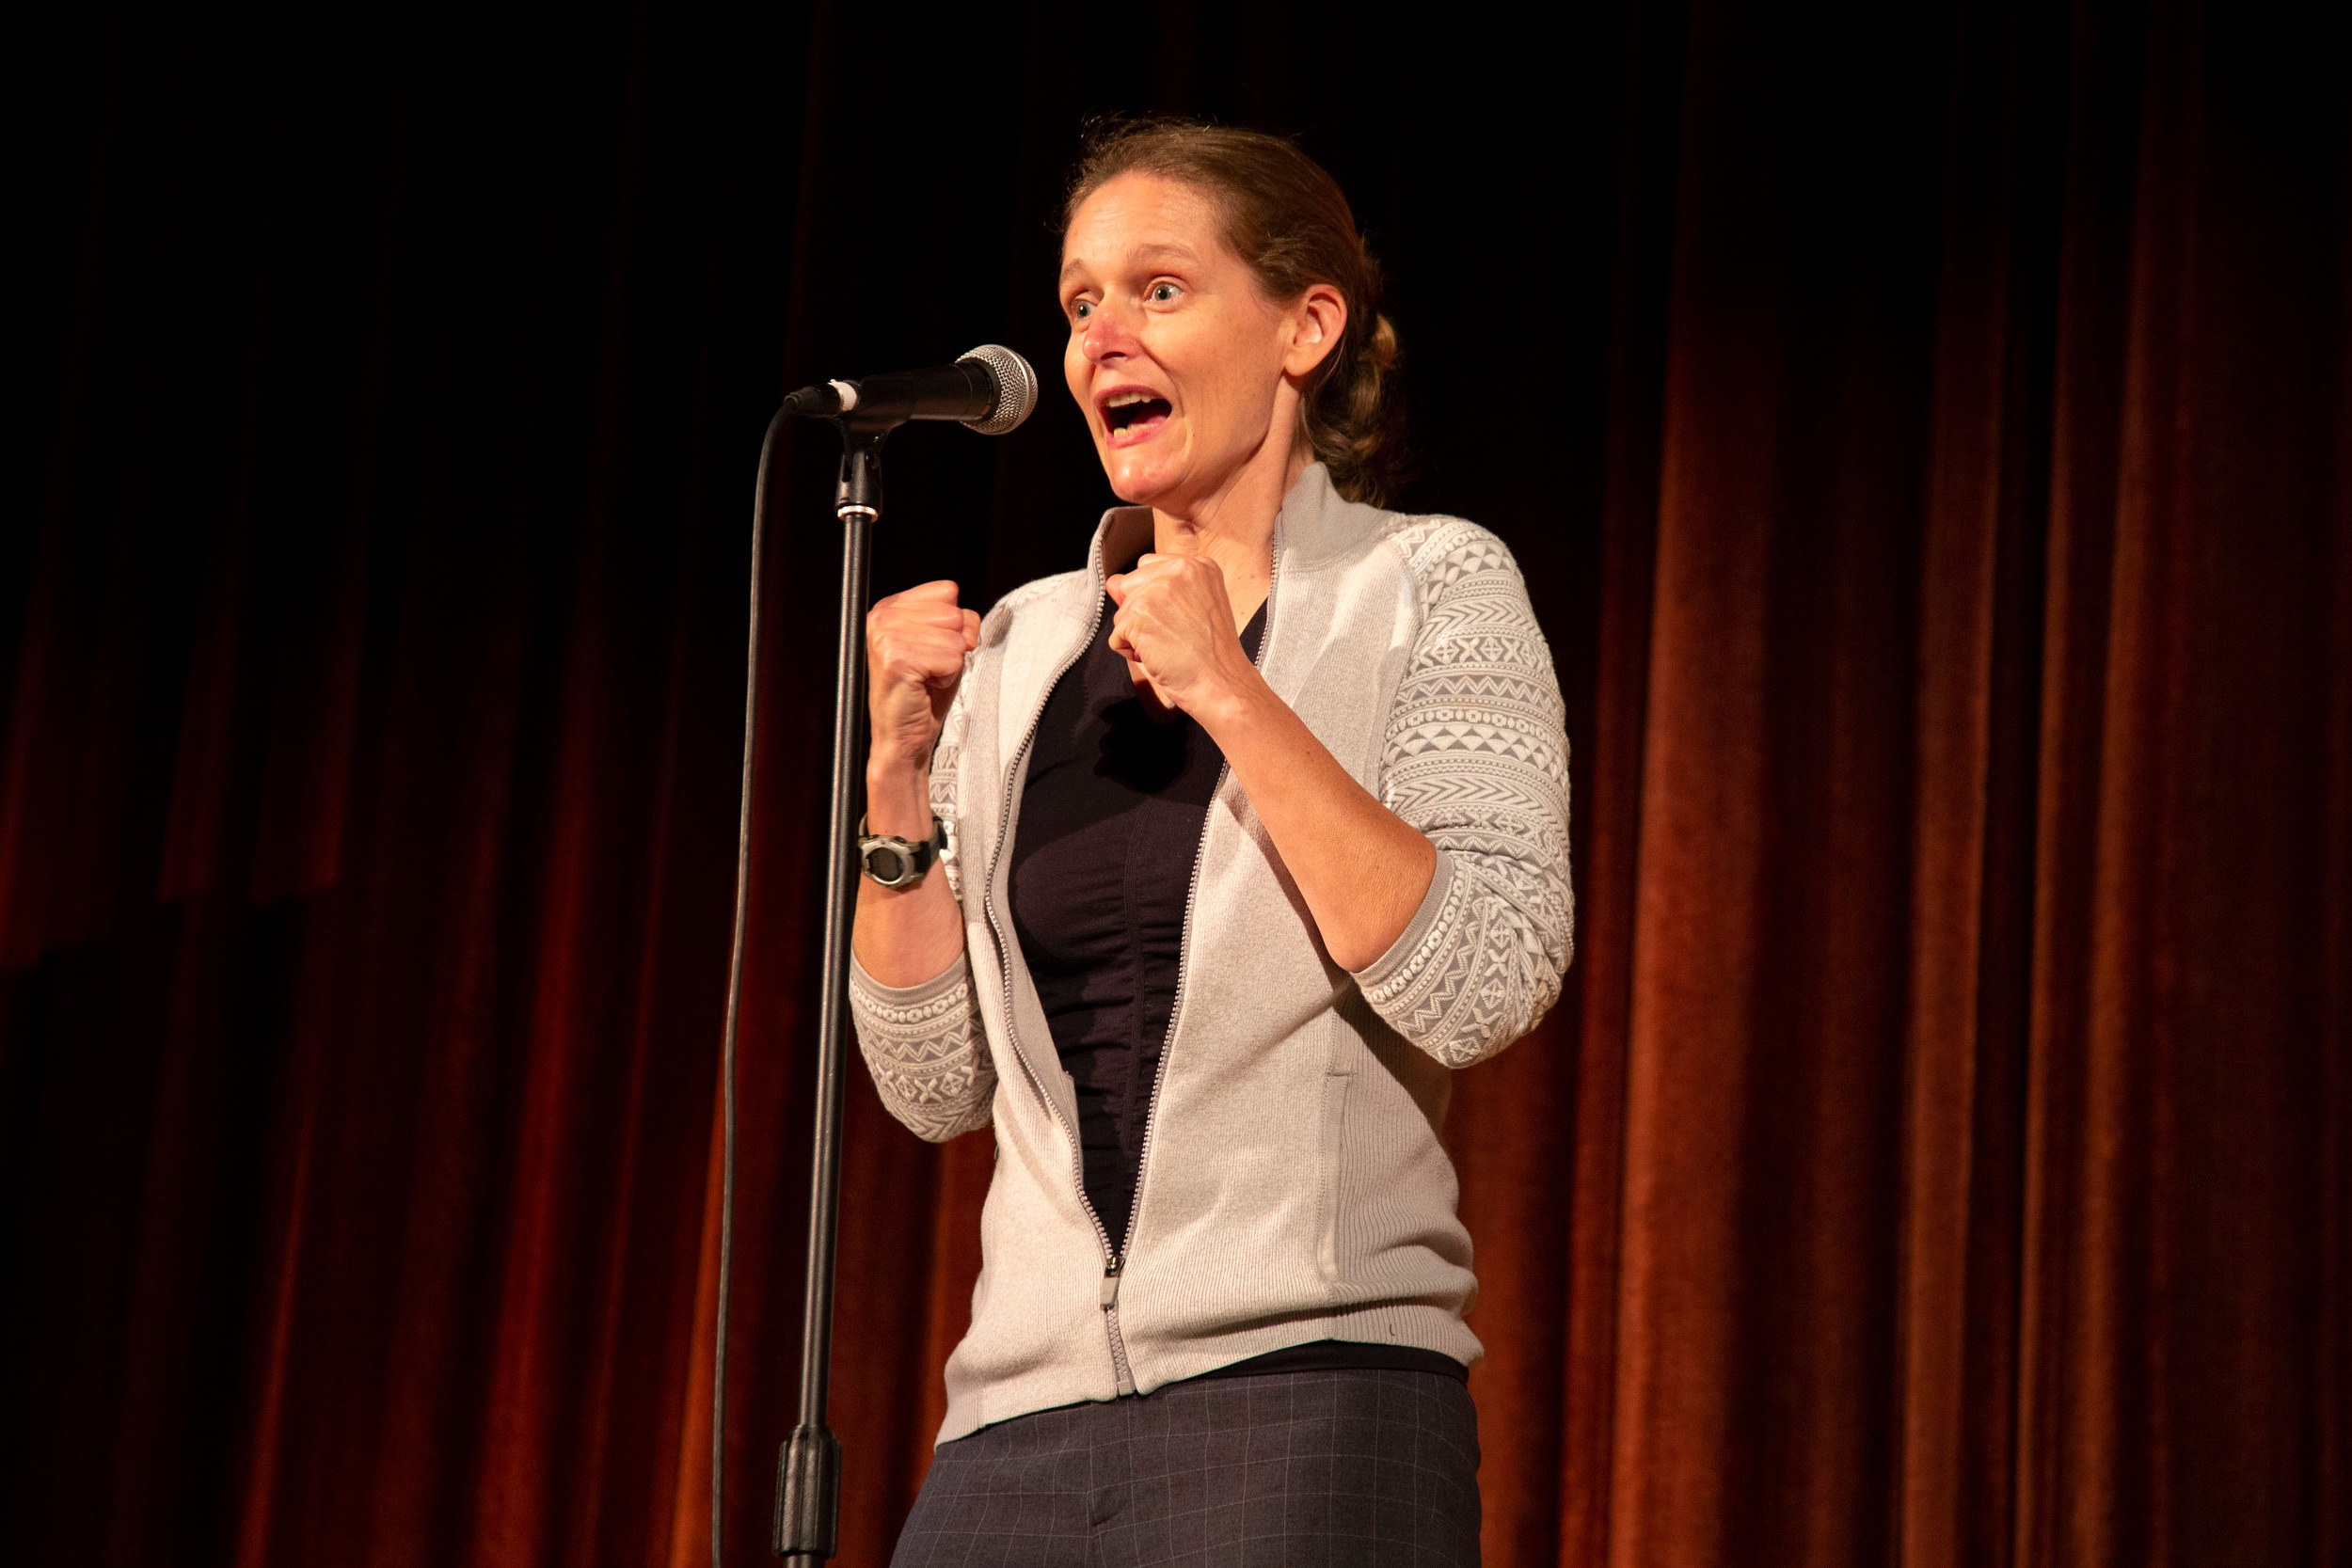 Heather Hamlin shares her story with our Story Collider audience at the Criterion Theater in Bar Harbor, ME in September 2018 as part of Maine Science Festival. Photo by Mike Perlman.